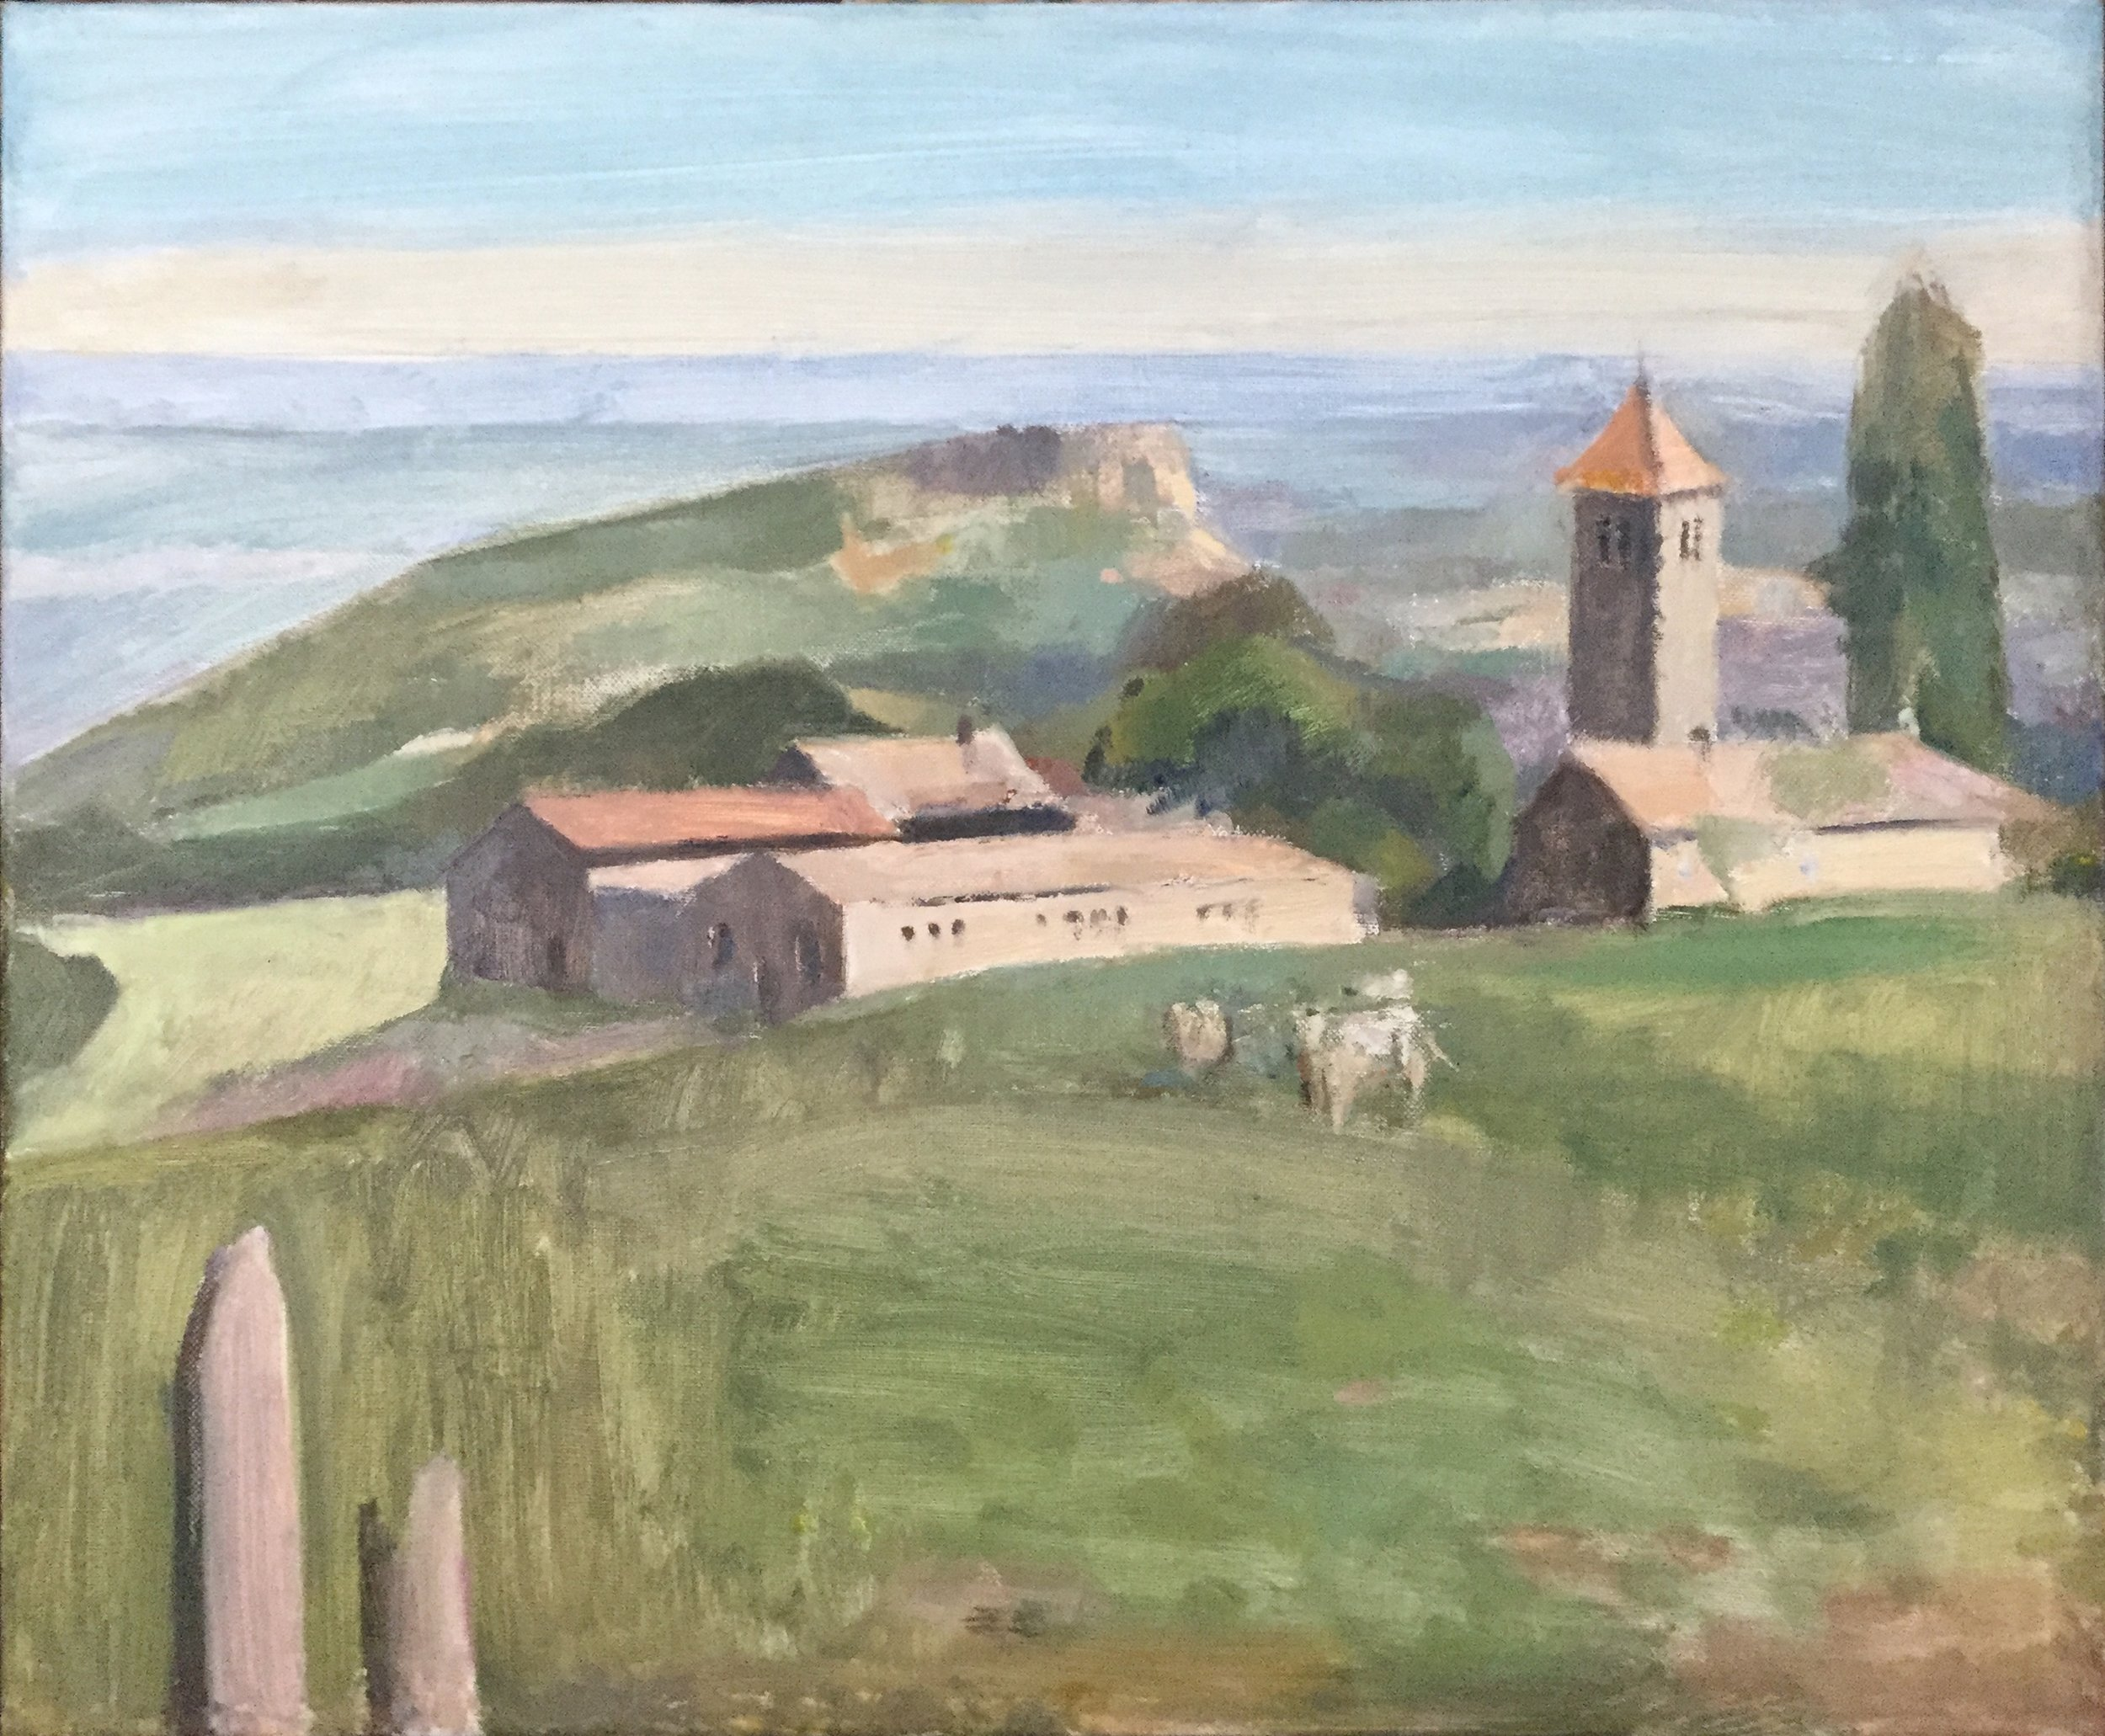 La Grange du Bois, Priory, 20 x 24 inches, oil on linen